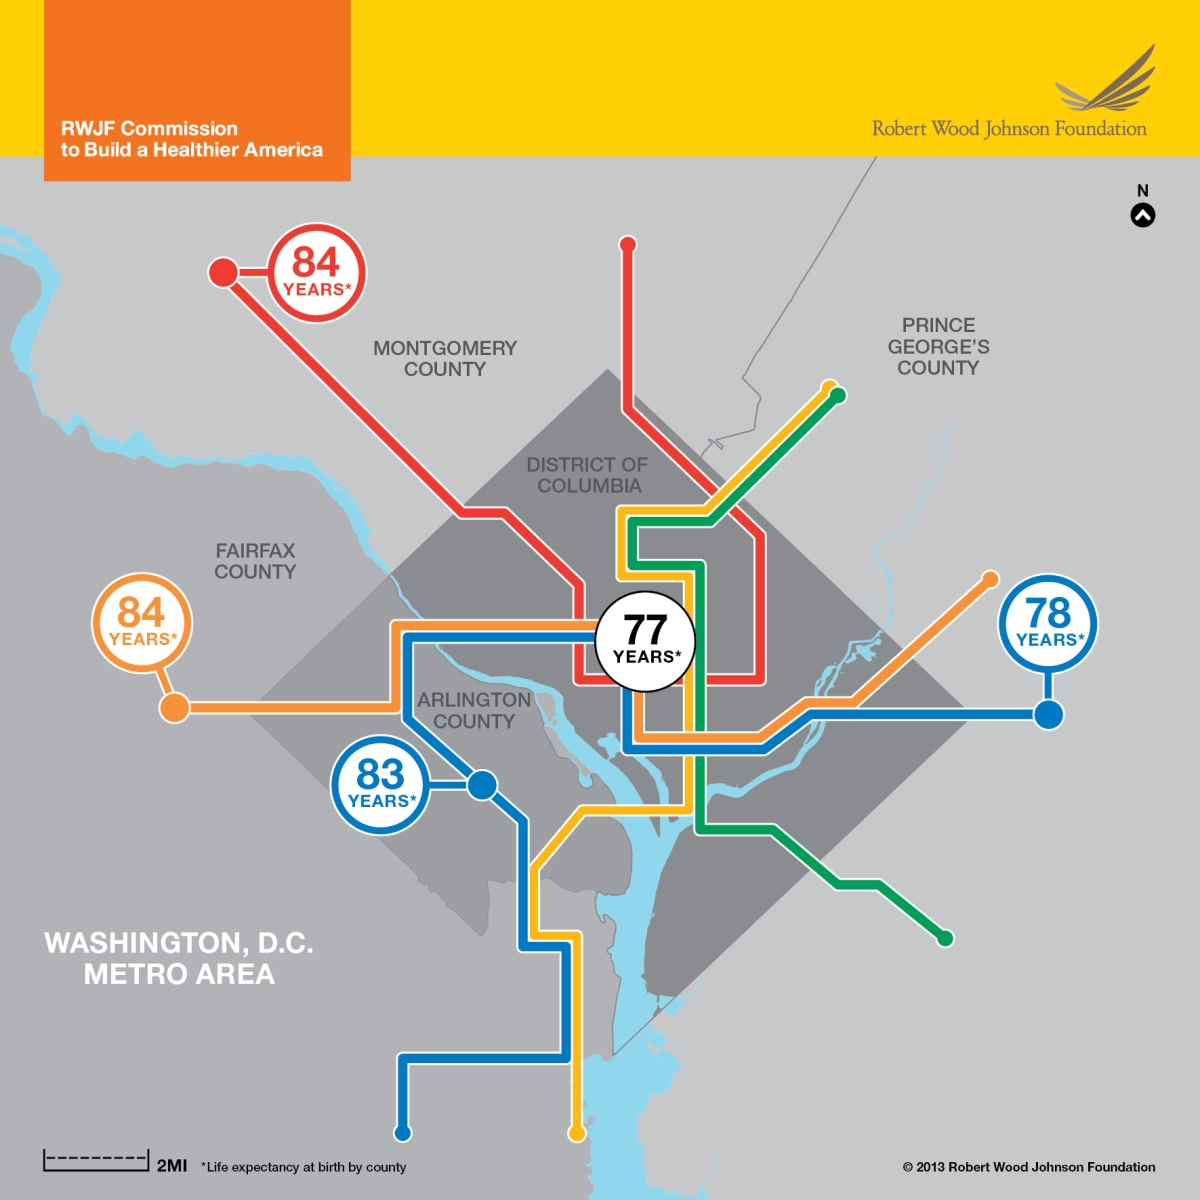 A Matter Of Miles New Maps To Show Differences In Life Expectancy - Washington dc map by neighborhood